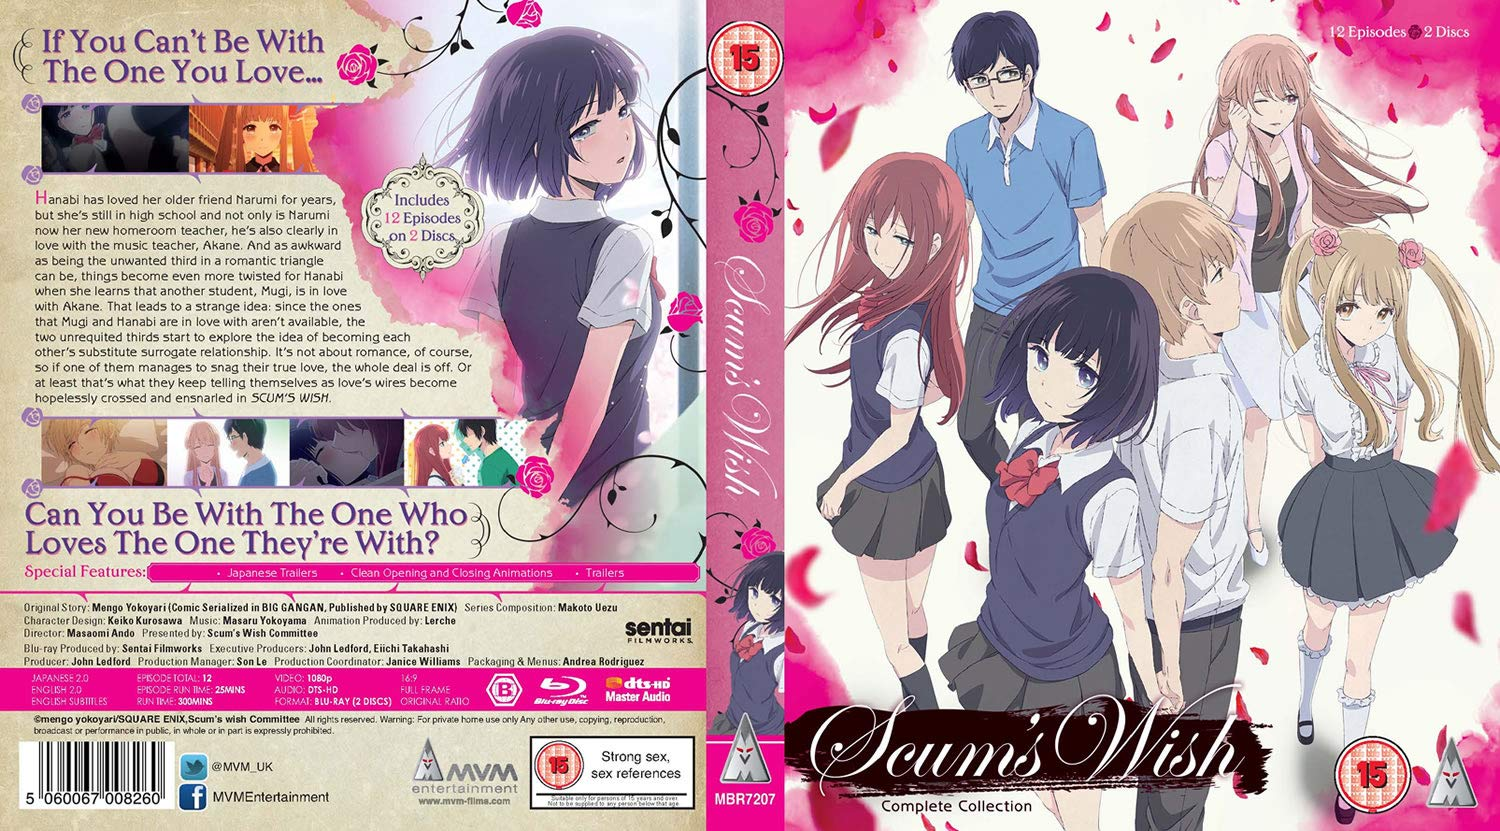 Scums Wish Complete Series Anime MVM Entertainment Blu-Ray Cover